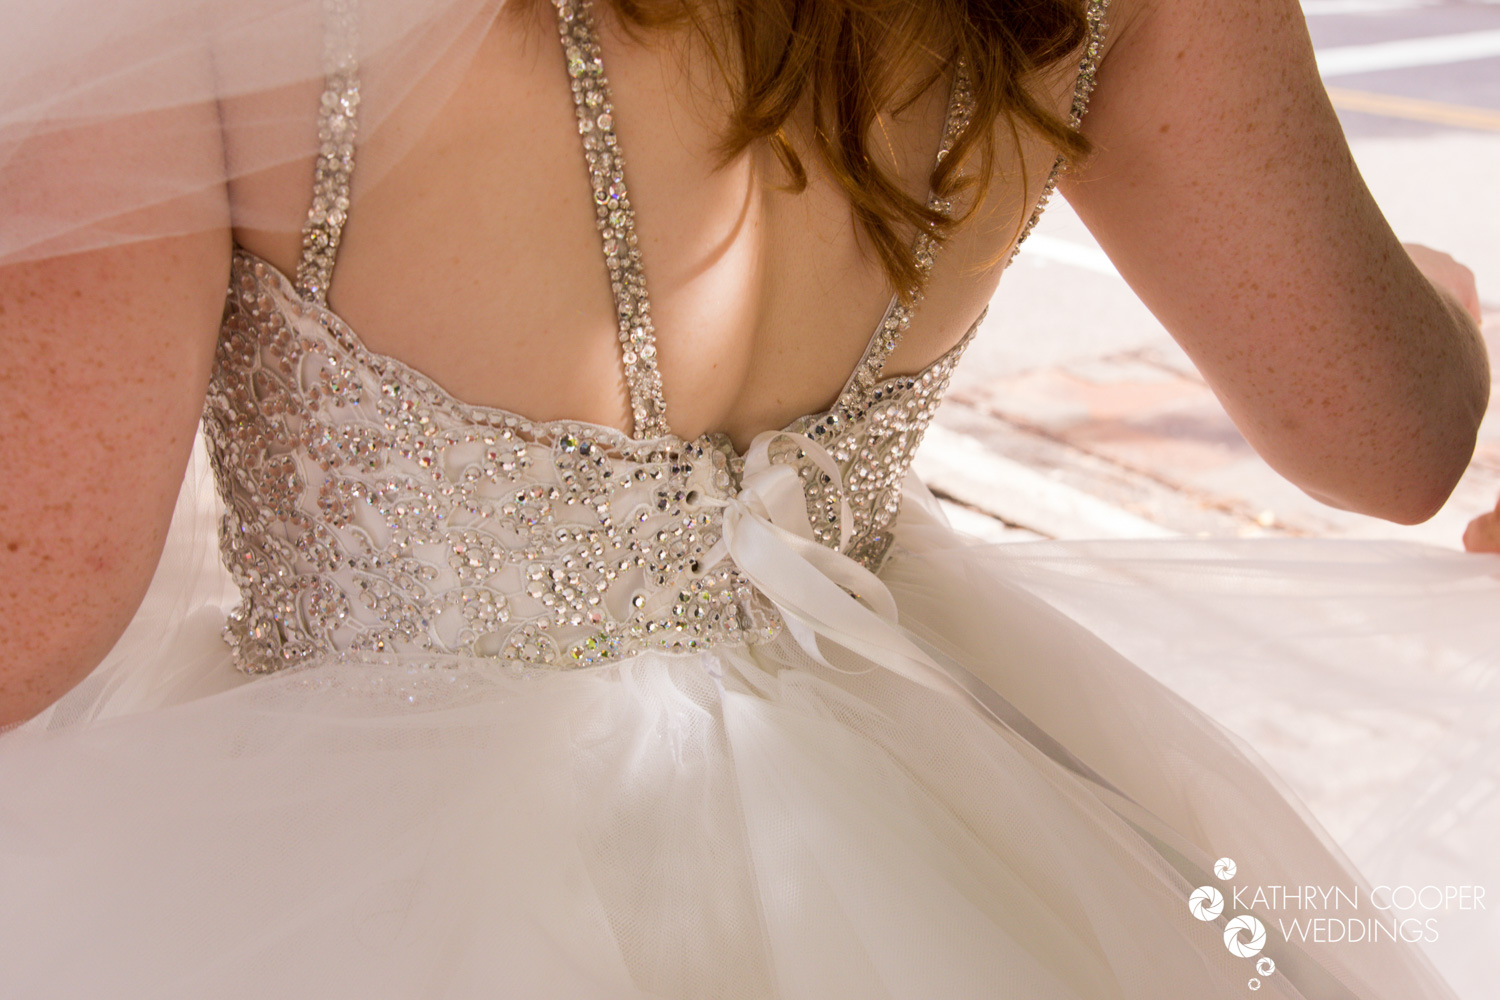 Pnina Tornai gown real bride details on back rhinestones